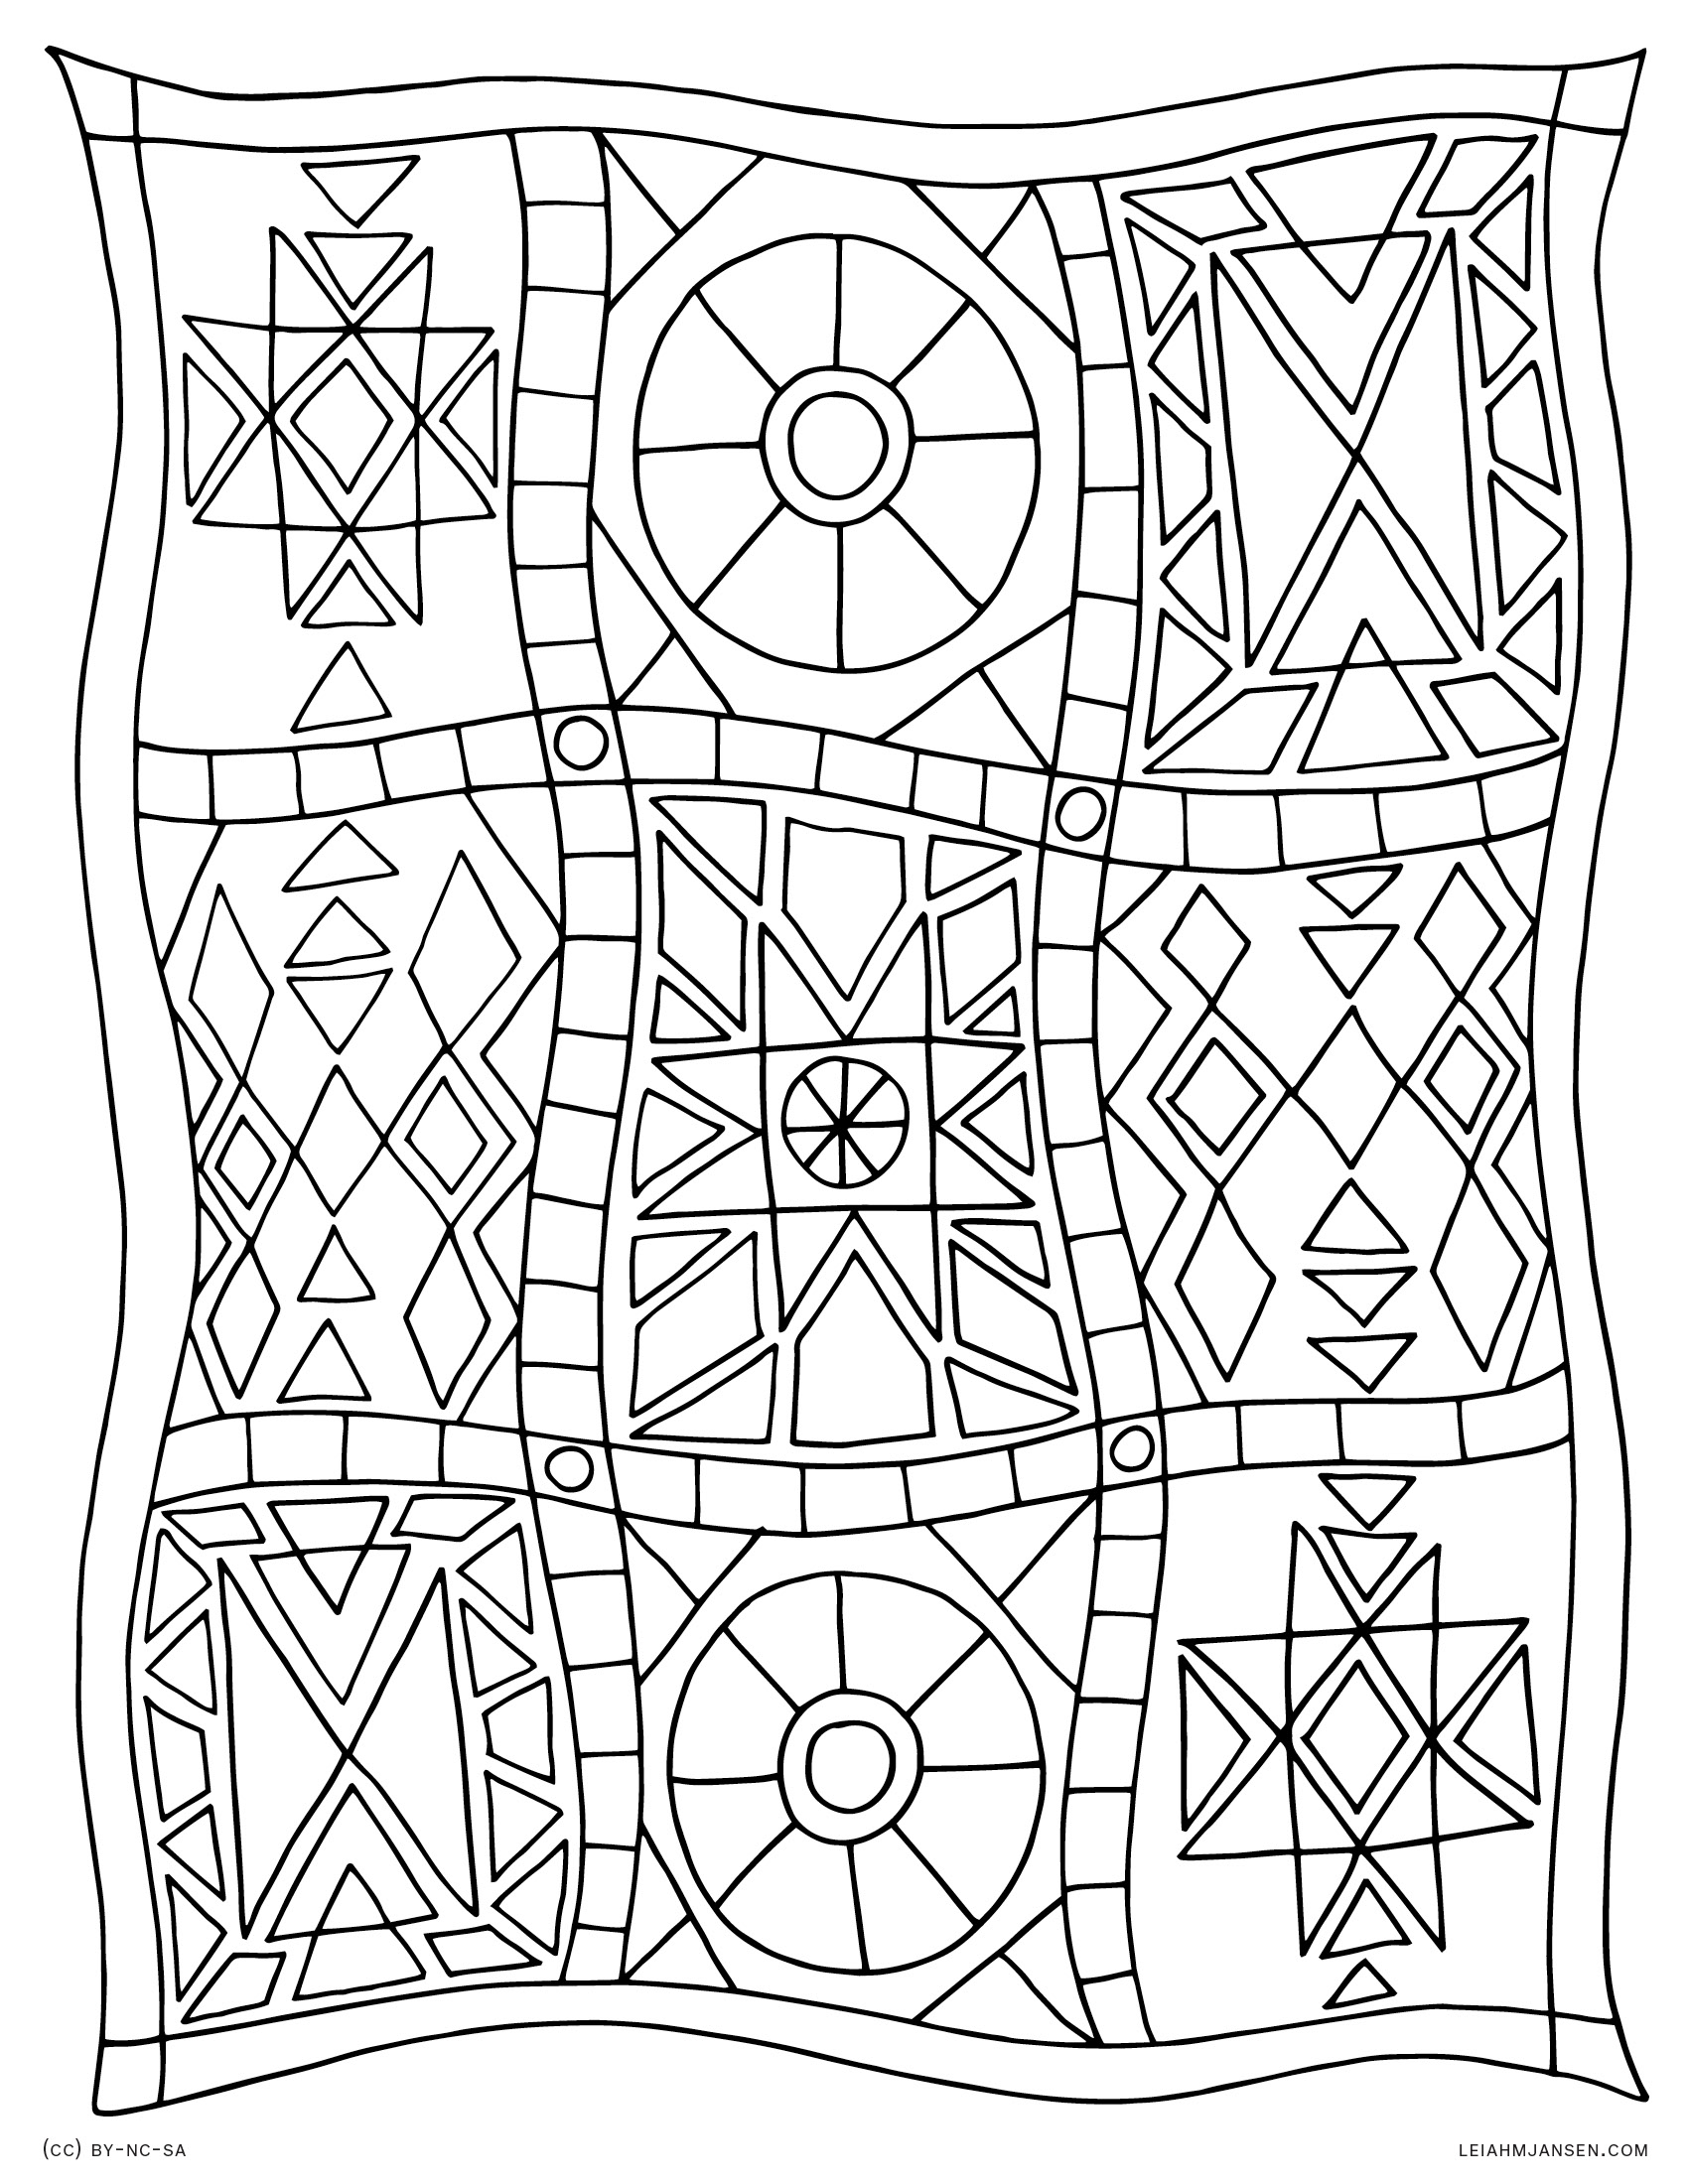 Colouring pages quilt - Coloring Pages Quilt